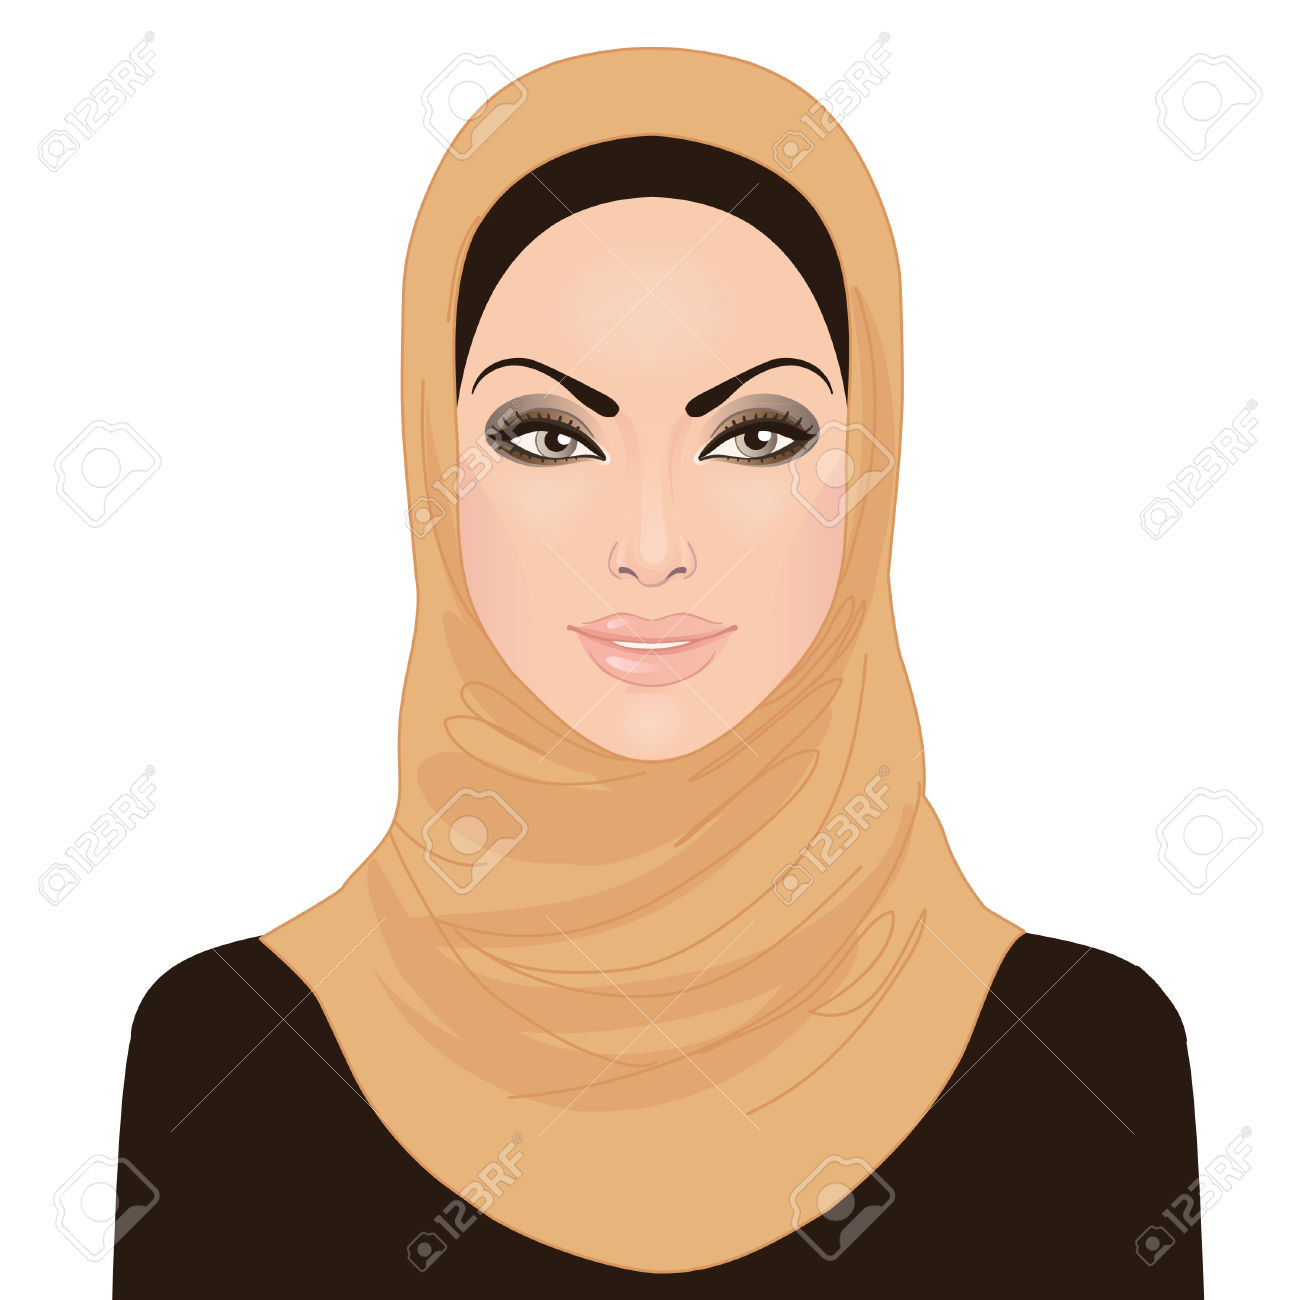 2,364 Hijab Stock Vector Illustration And Royalty Free Hijab Clipart.